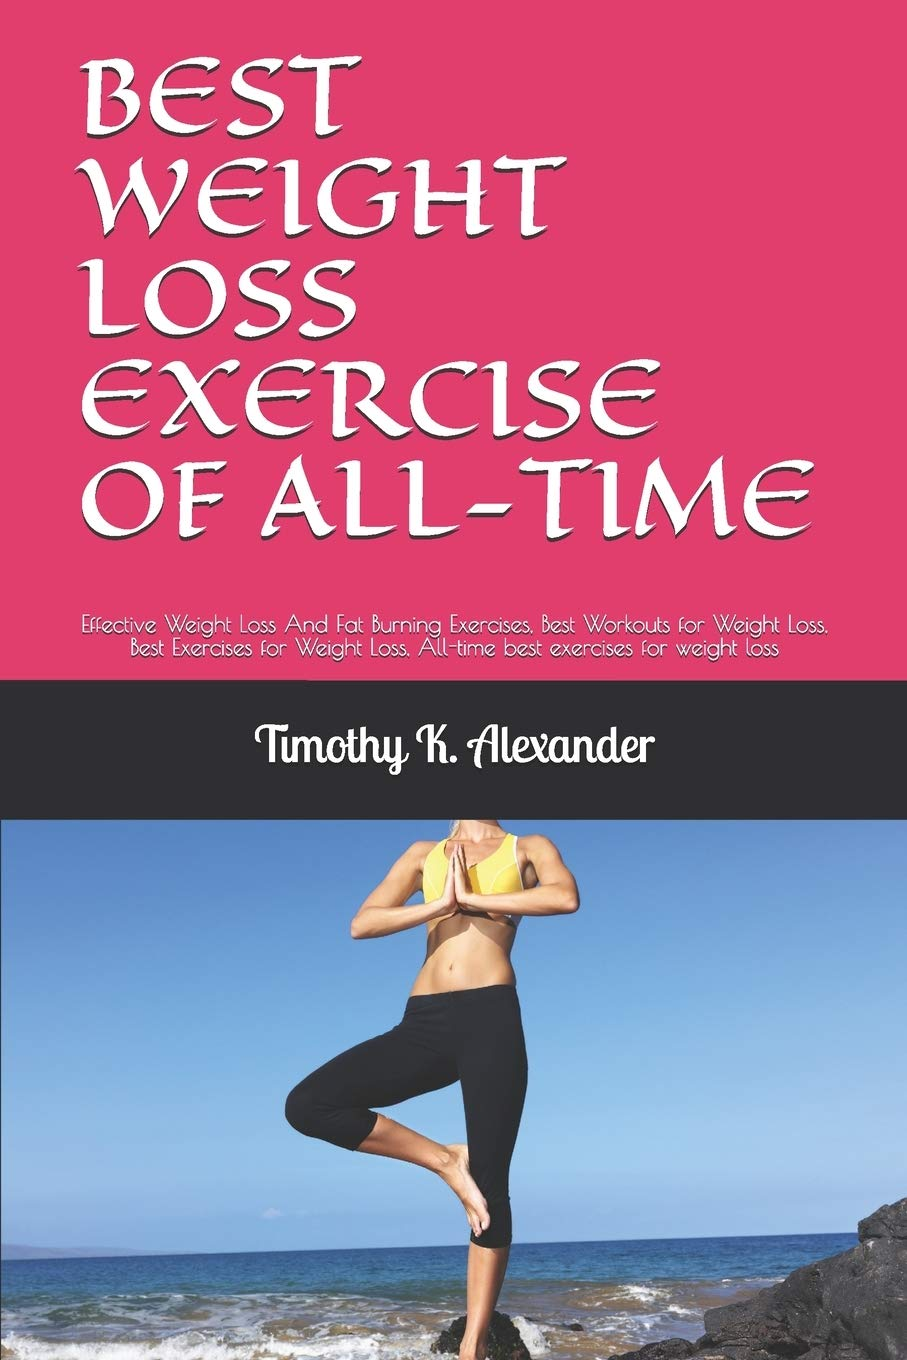 Best Weight Loss Exercise Of All Time Effective Weight Loss And Fat Burning Exercises Best Workouts For Weight Loss Best Exercises For Weight Loss All Time Best Exercises For Weight Loss Alexander Timothy K